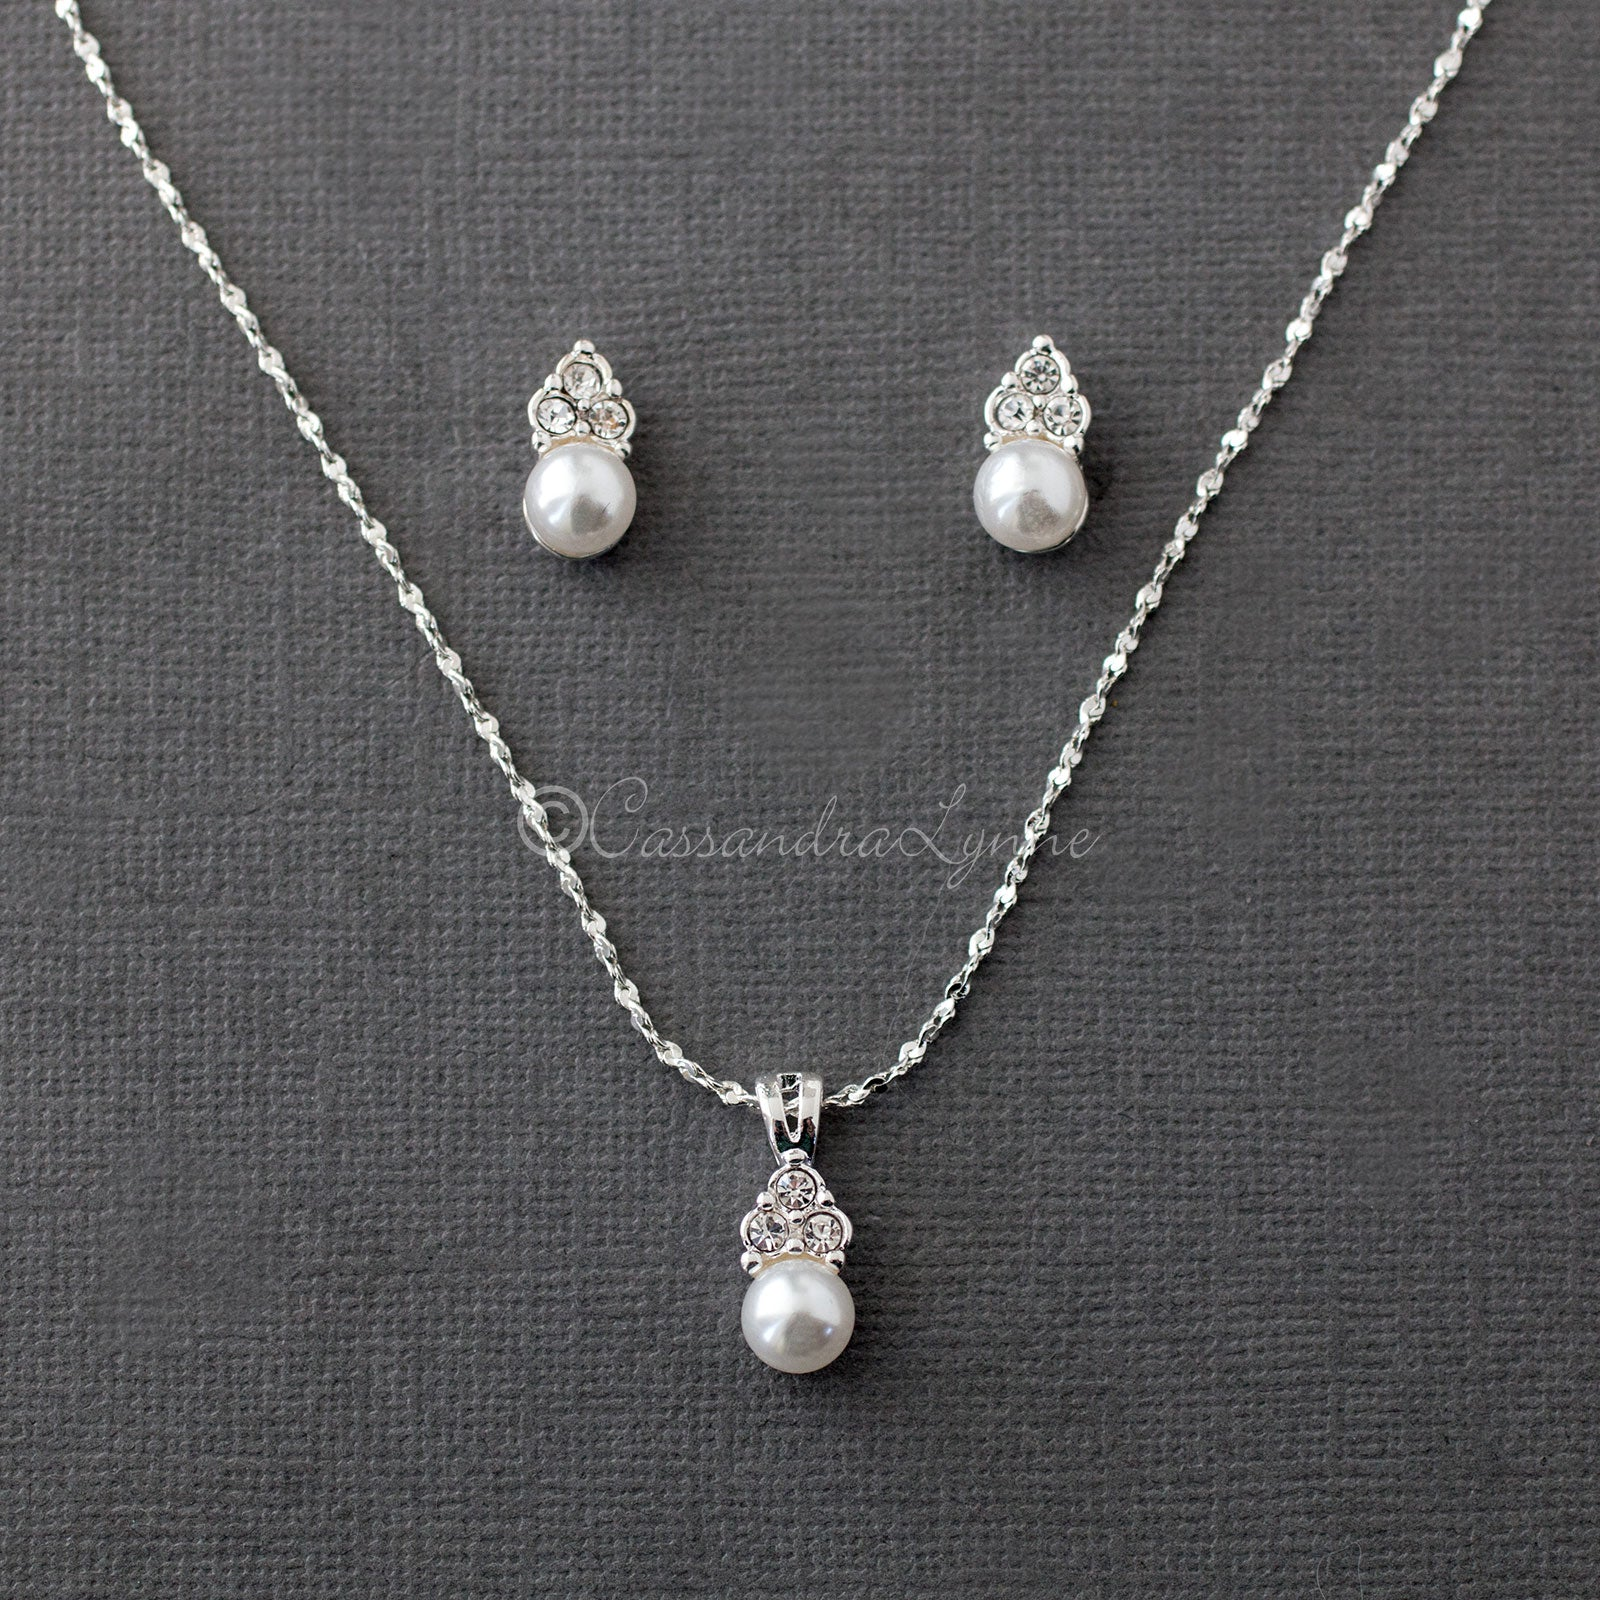 Pearl Wedding Necklace Set with Crystals